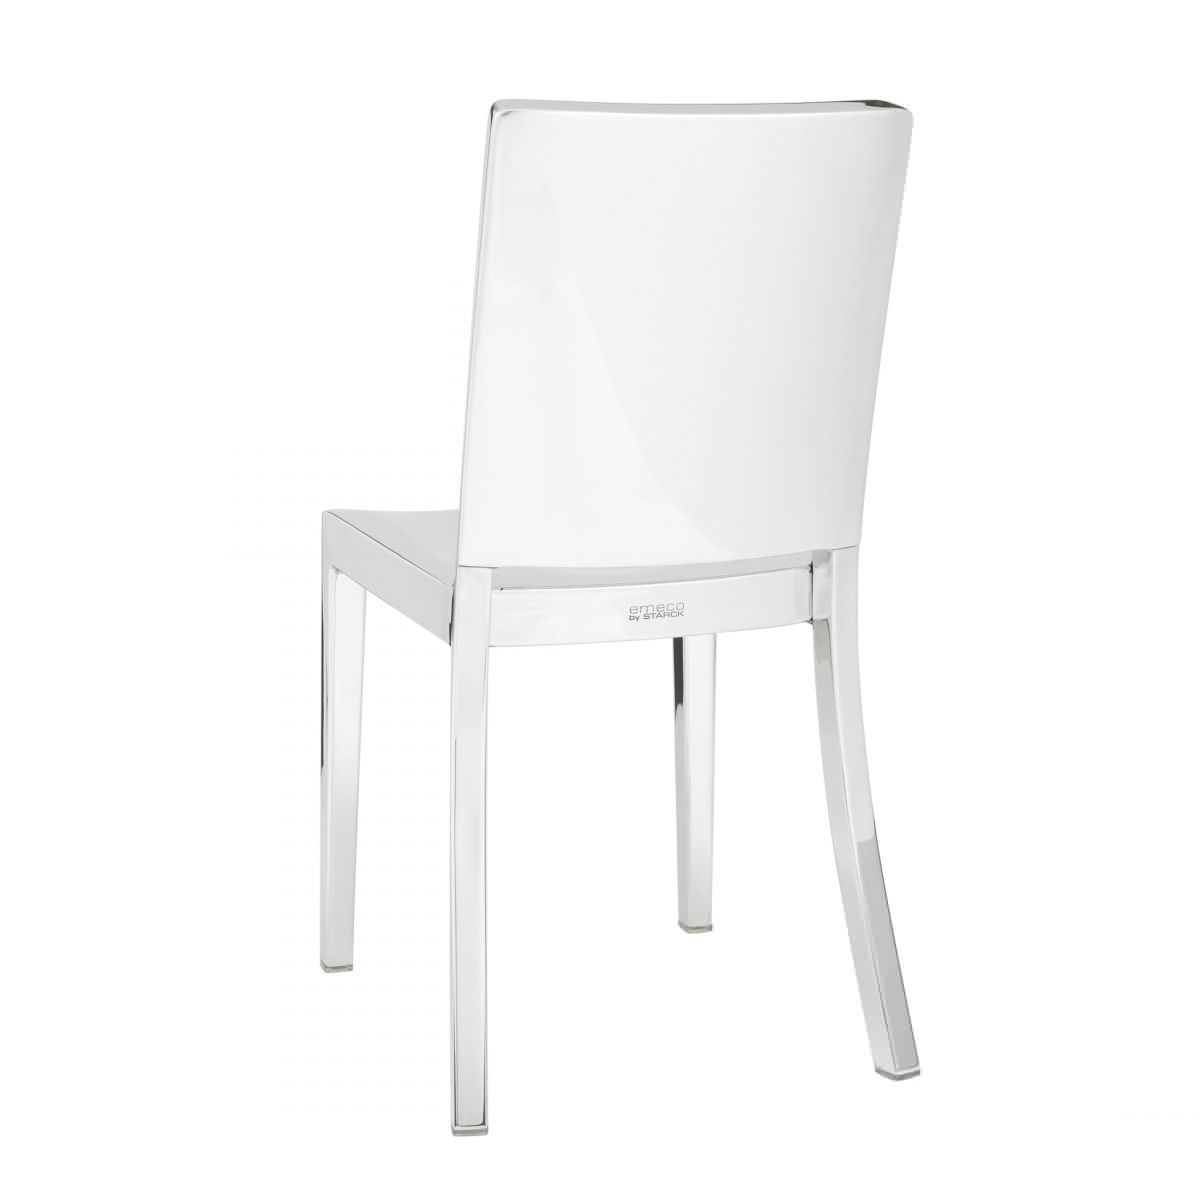 Charmant Contemporary Chair / Aluminum / By Philippe Starck ...